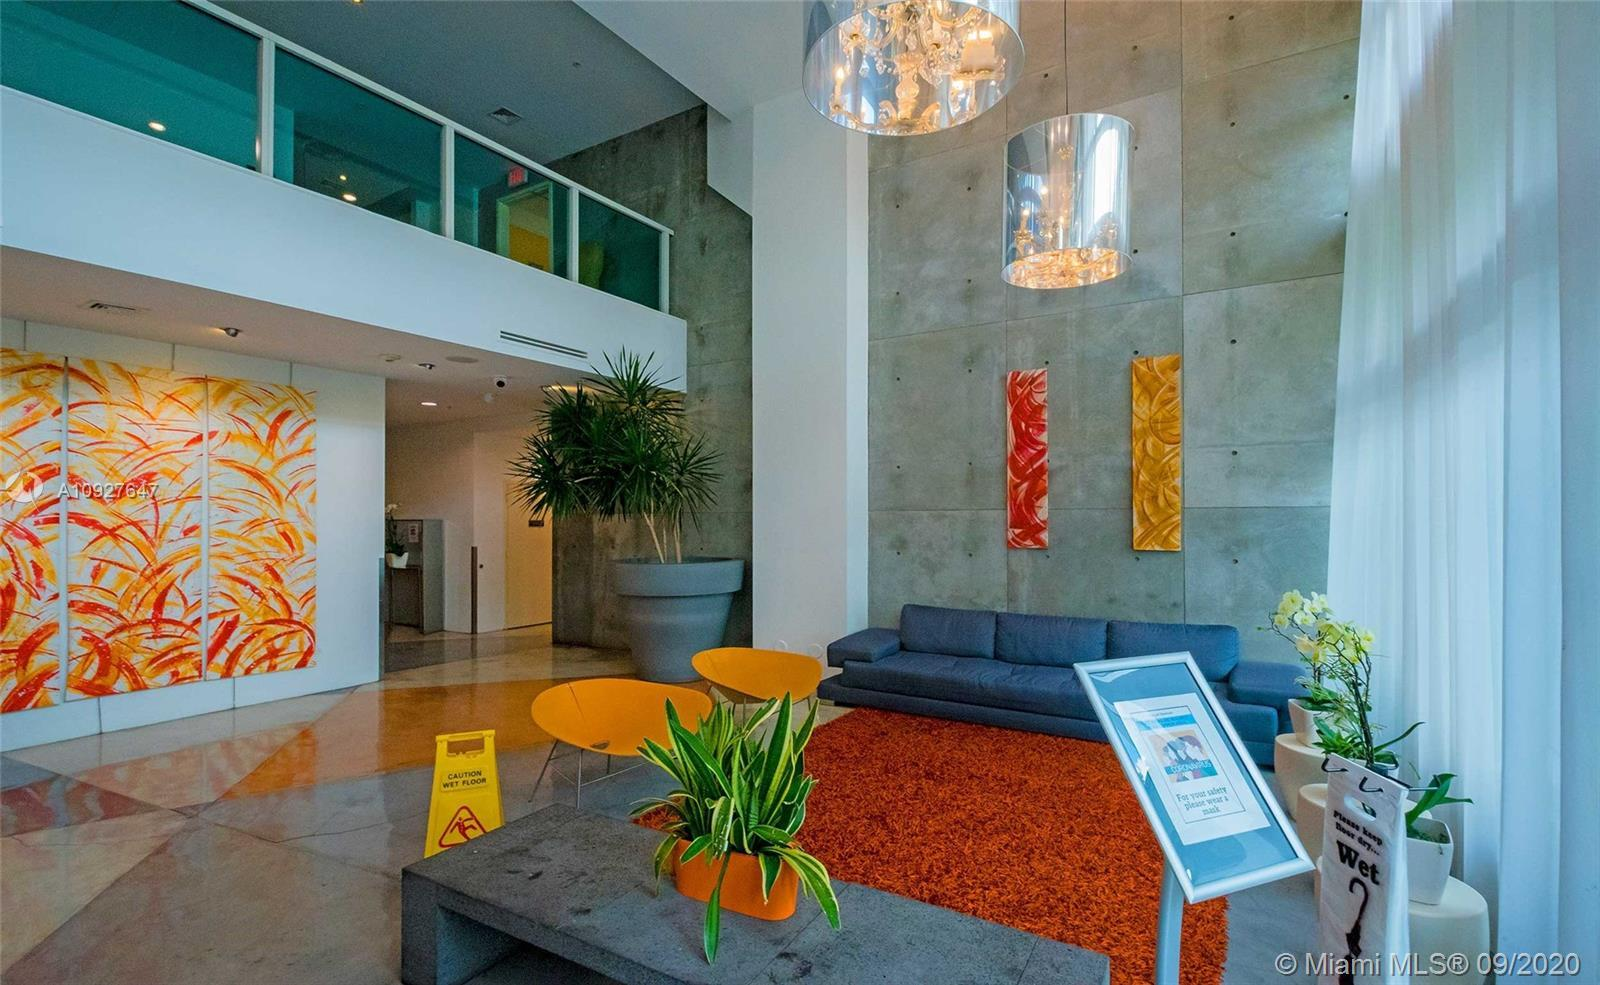 A SPACIOUS AND MODERN 2/2 LOFT STYLE UNIT IN THE HEART OF DOWNTOWN MIAMI, CLOSE TO METRO MOVER. PARK